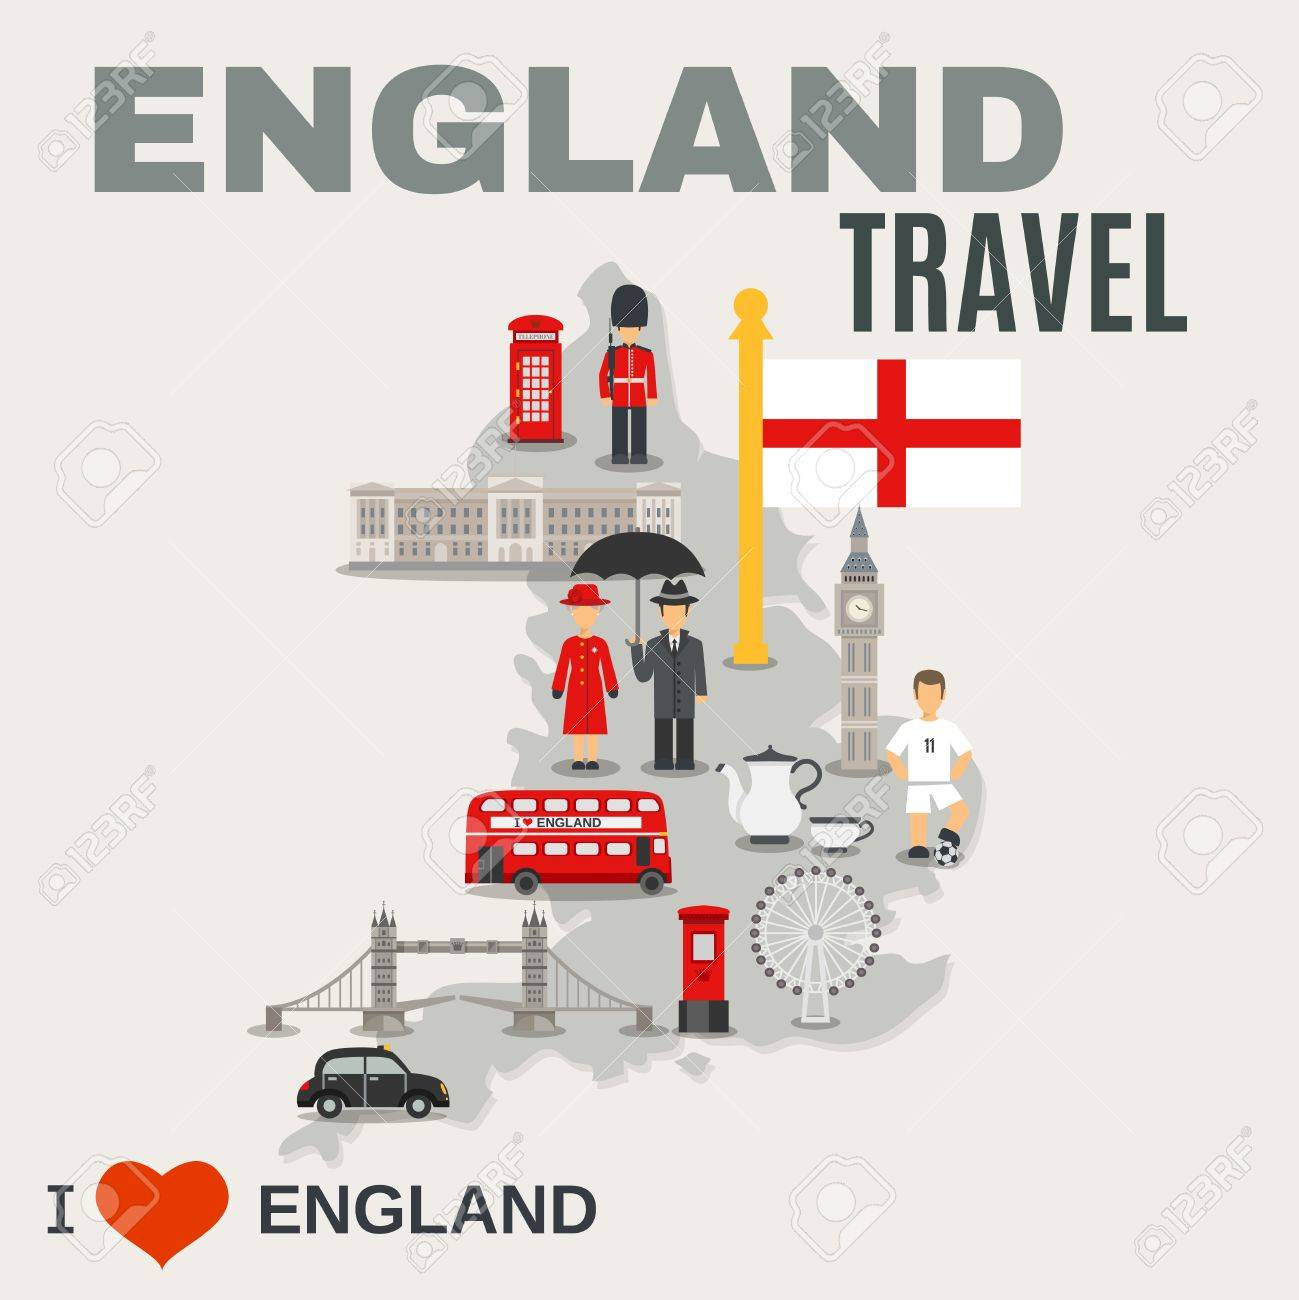 Map Of England Poster.Albion Island Travel Misty Grey Map Of England Poster With Sightseeing